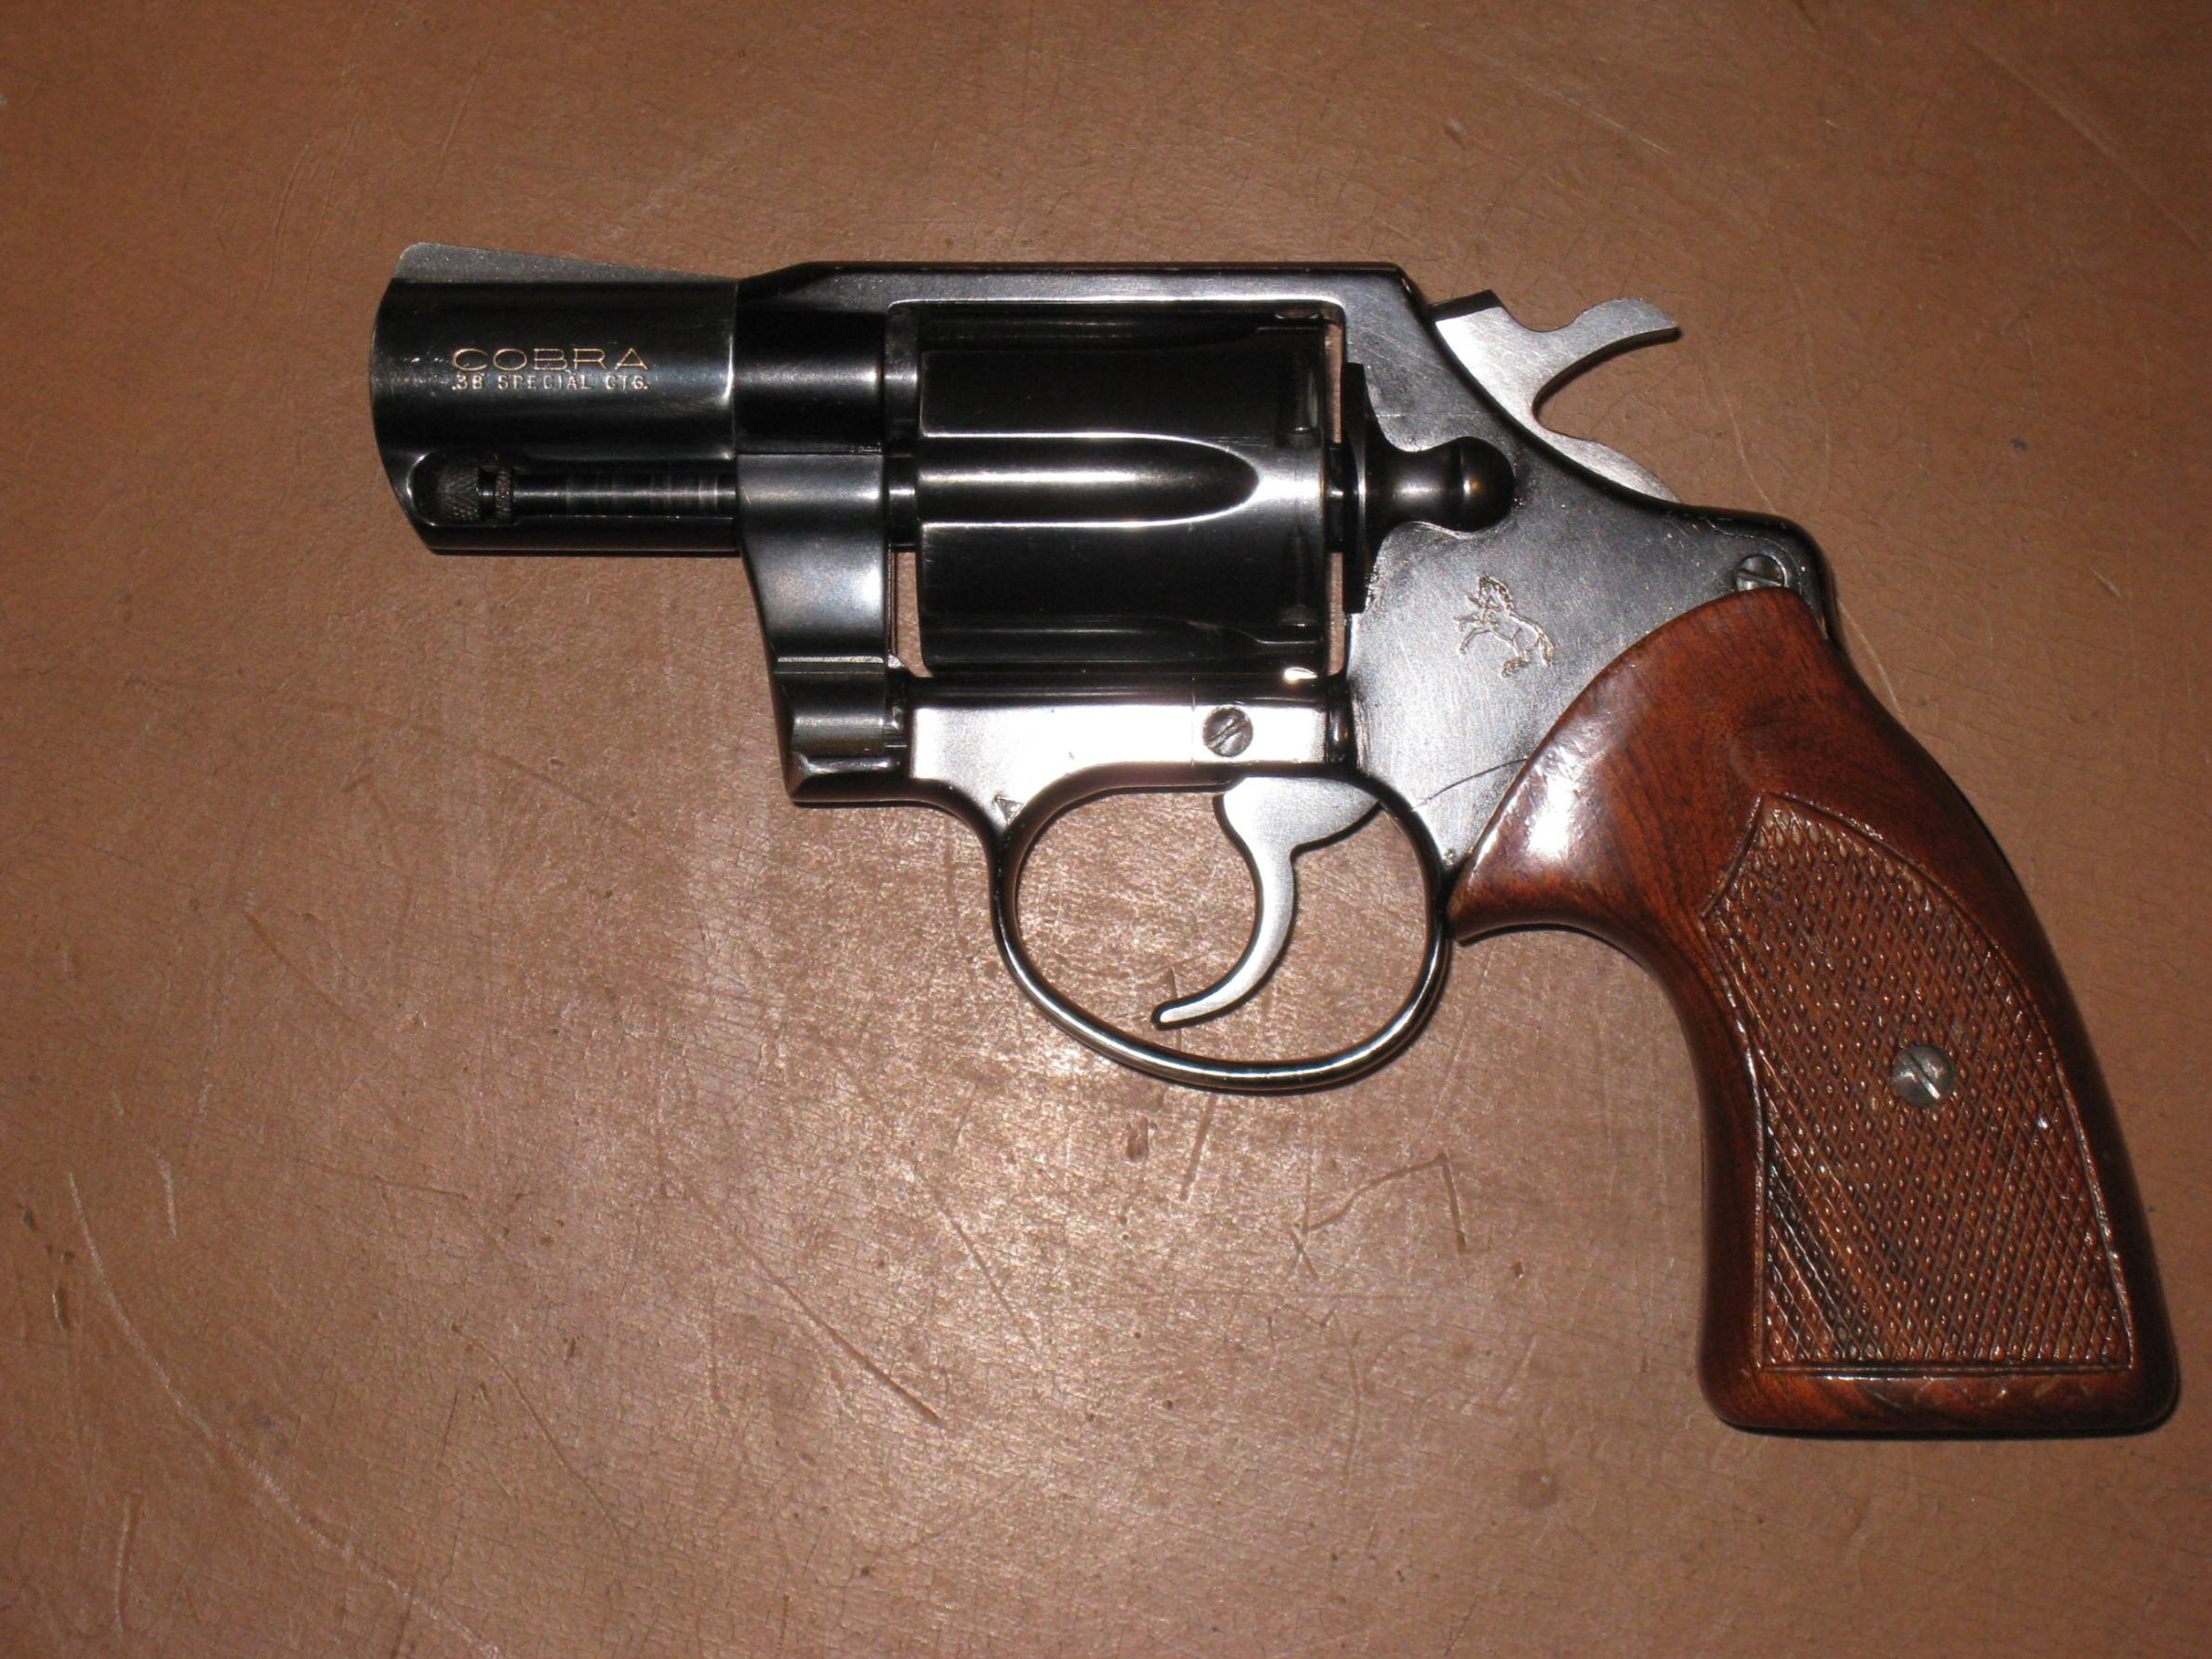 Does Anyone Out There Take Colt Revolvers Seriously?-picture-016.jpg